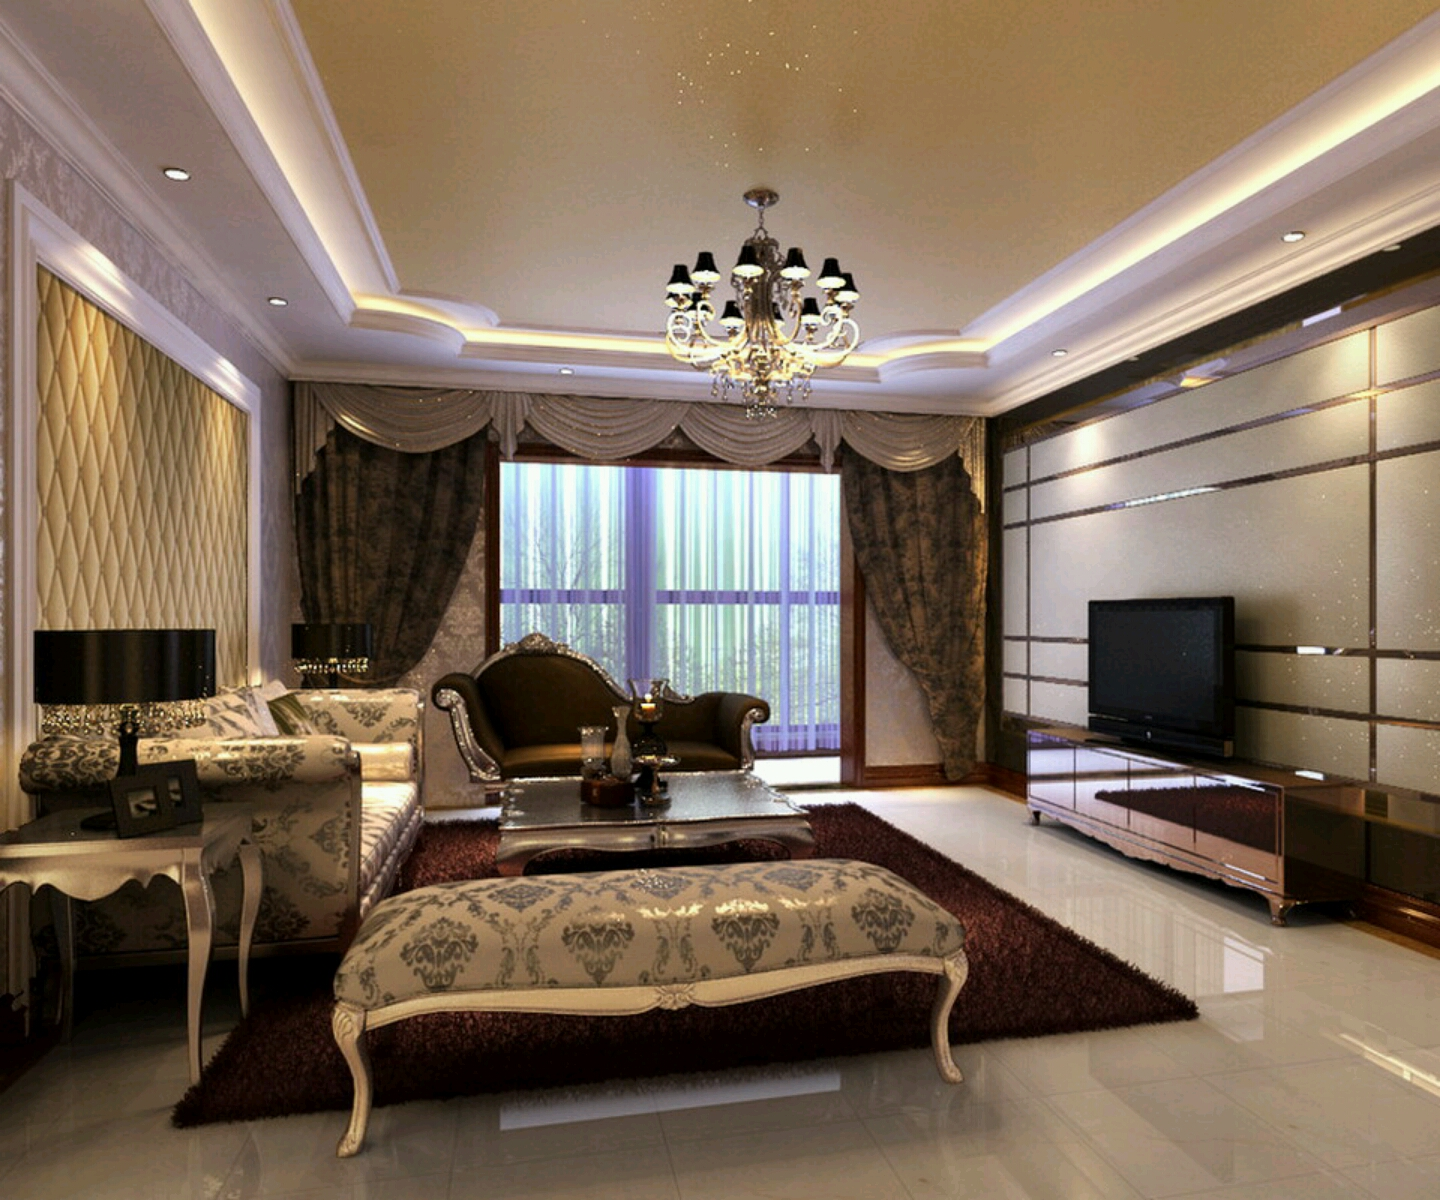 New home designs latest luxury homes interior decoration living room designs ideas - Home deco ...